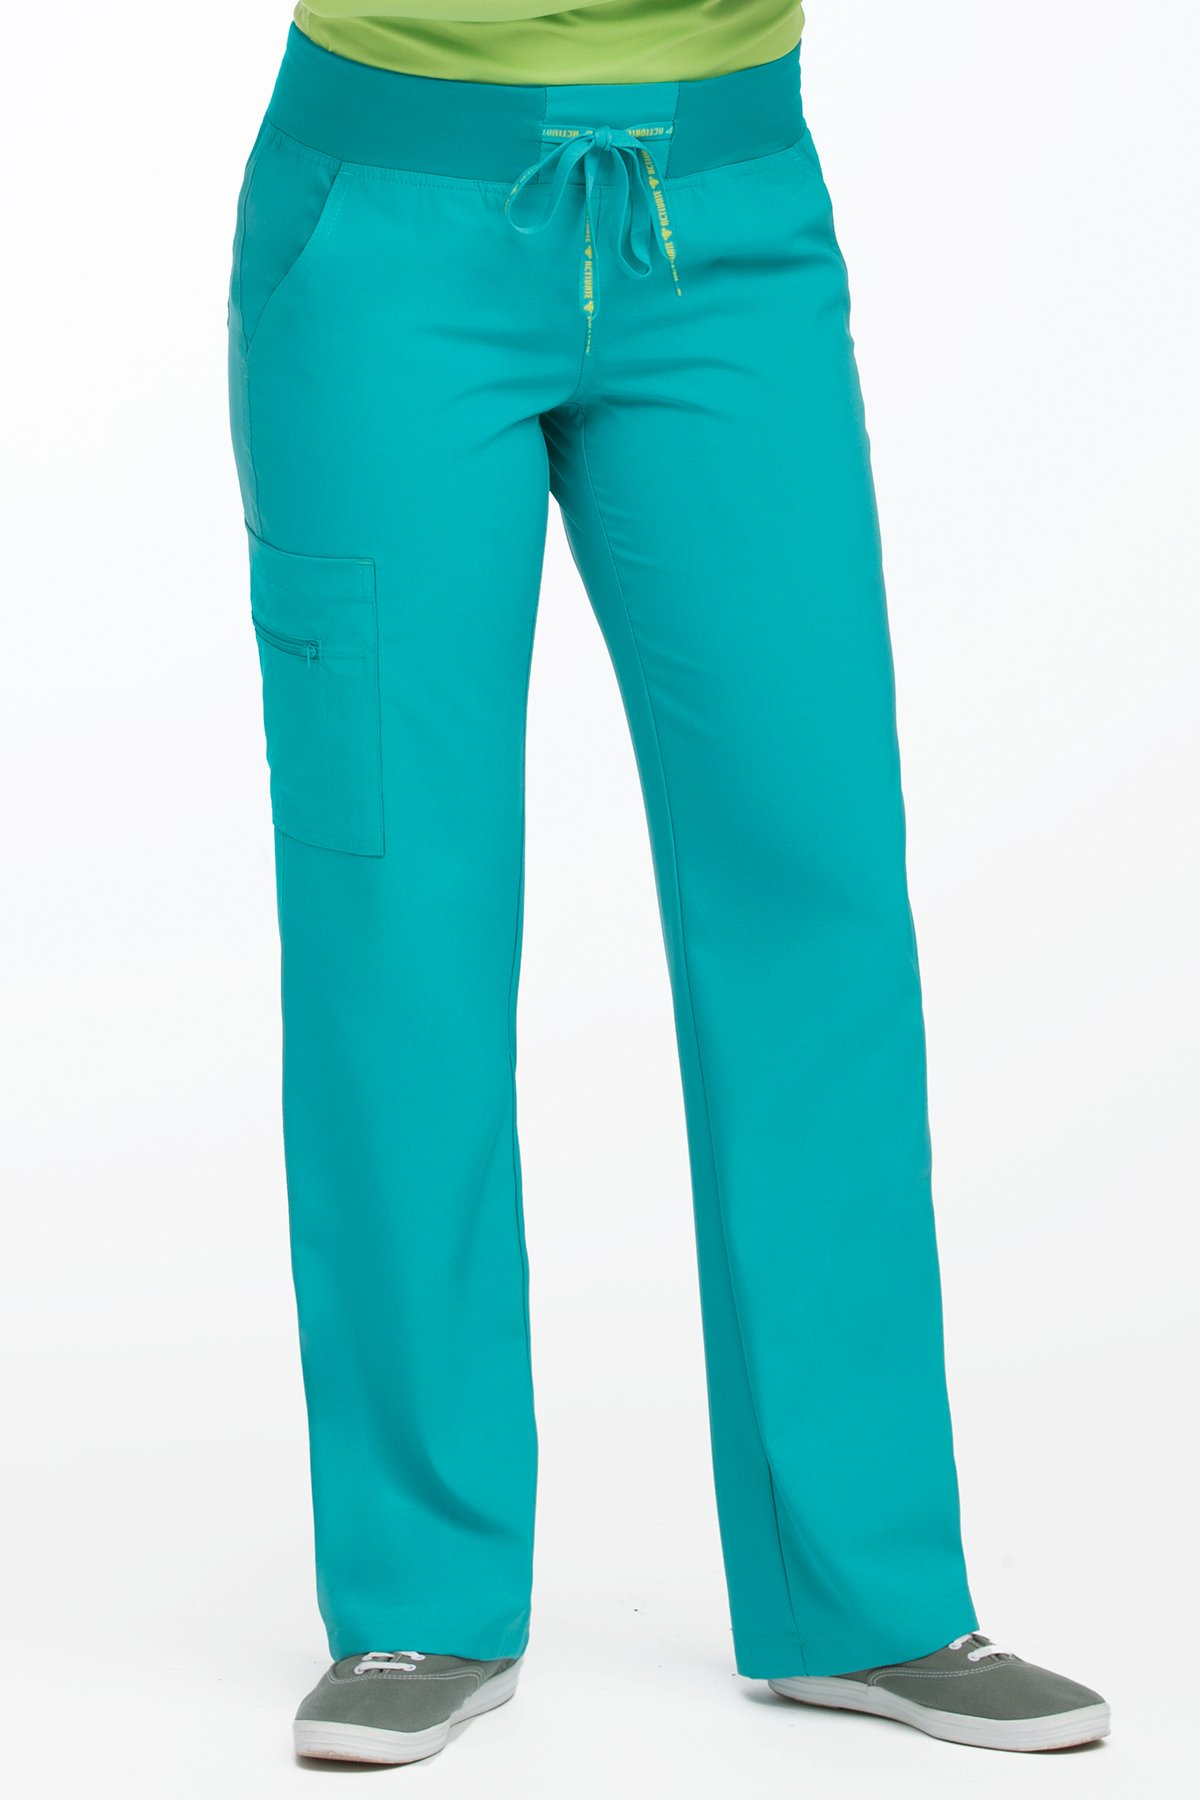 Med Couture Activate Women's Yoga Cargo Pocket Scrub Pant, Small, Aquamarine by Med Couture